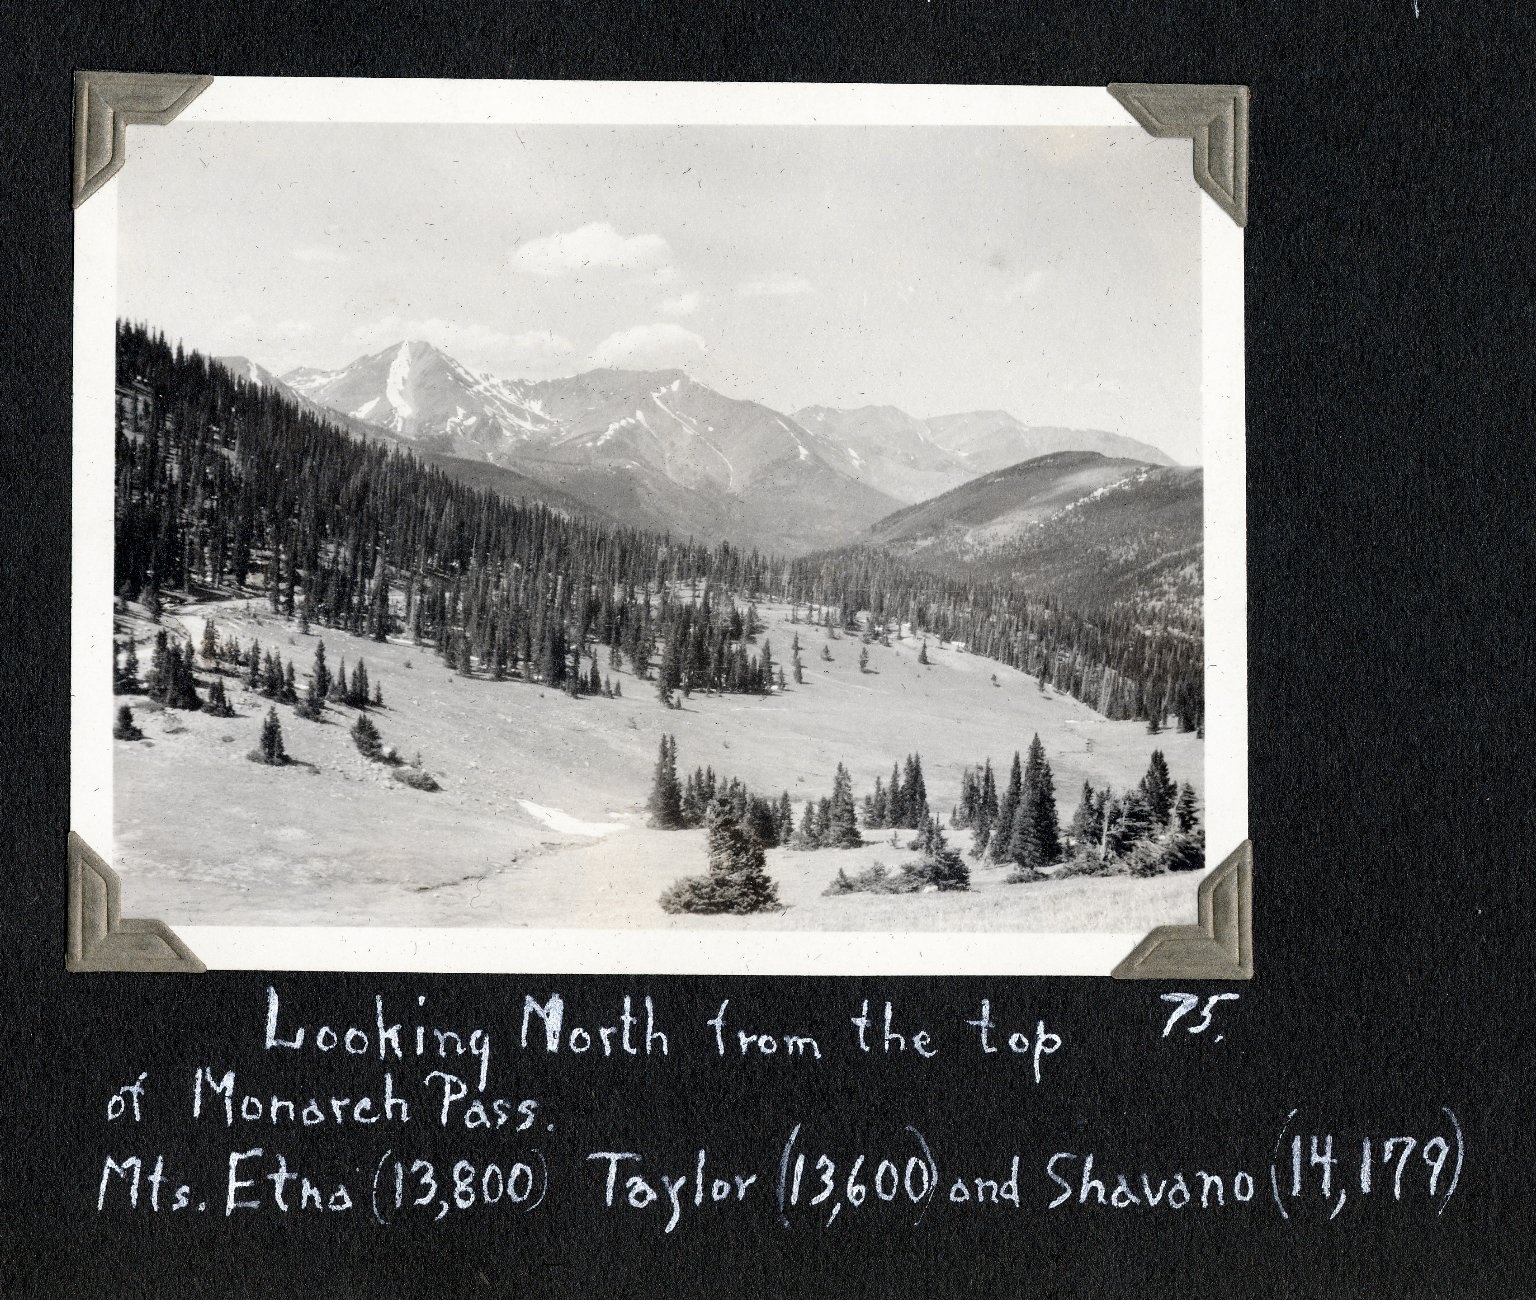 Looking north from top of Monarch Pass